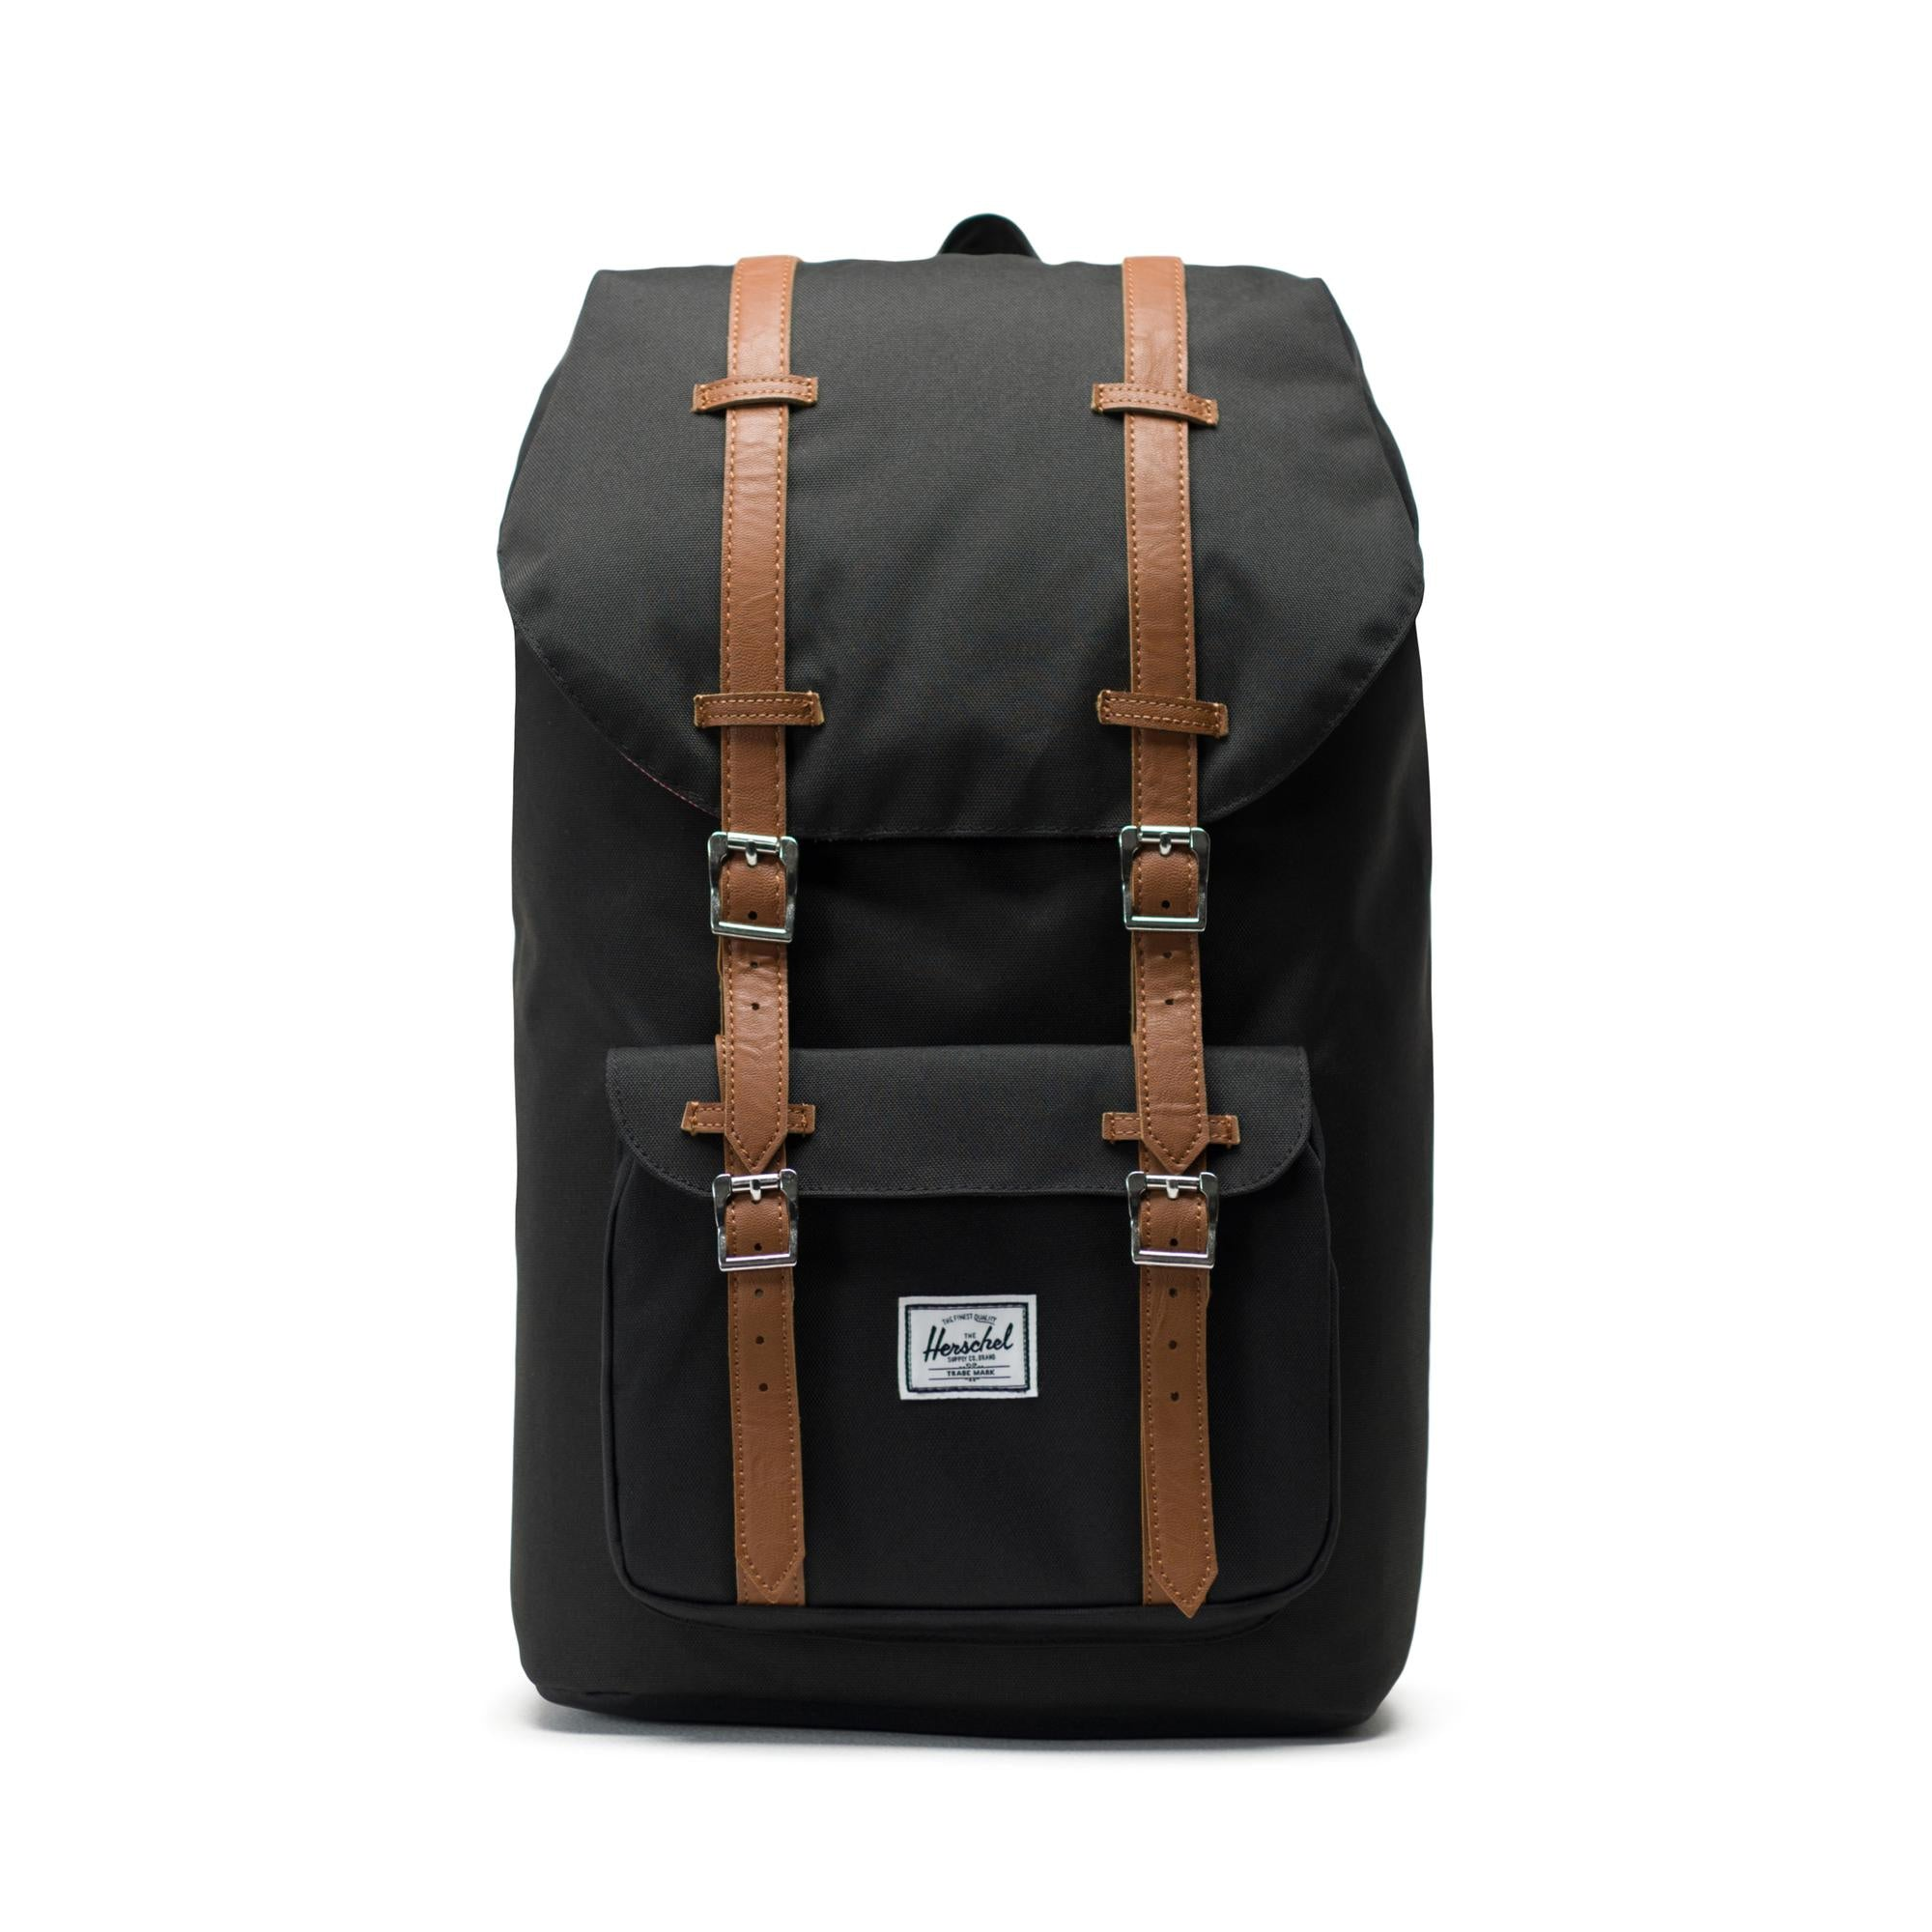 HERSCHEL LITTLE AMERICA BLACK/TAN SYNTHETIC LEATHER BACKPACK